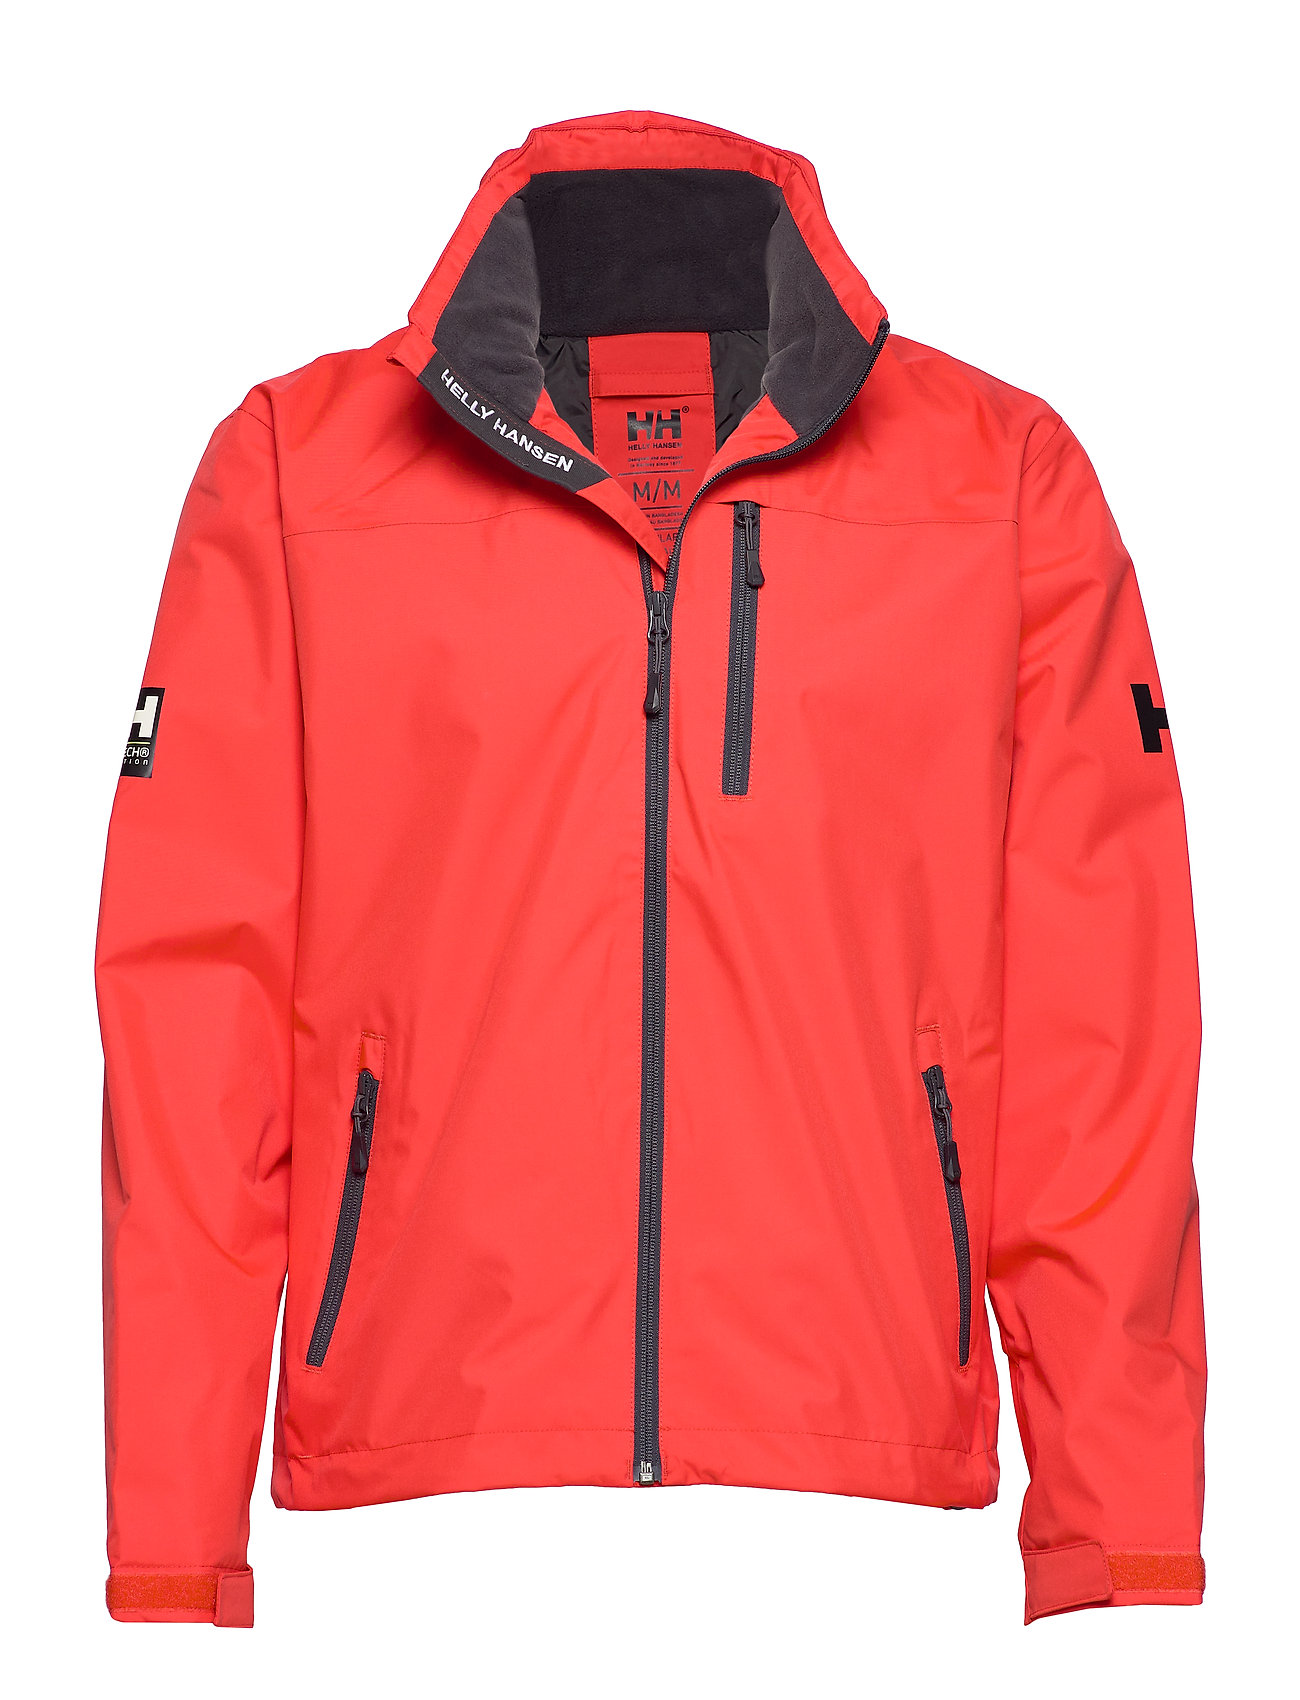 Helly Hansen CREW HOODED MIDLAYER JACKET - ALERT RED